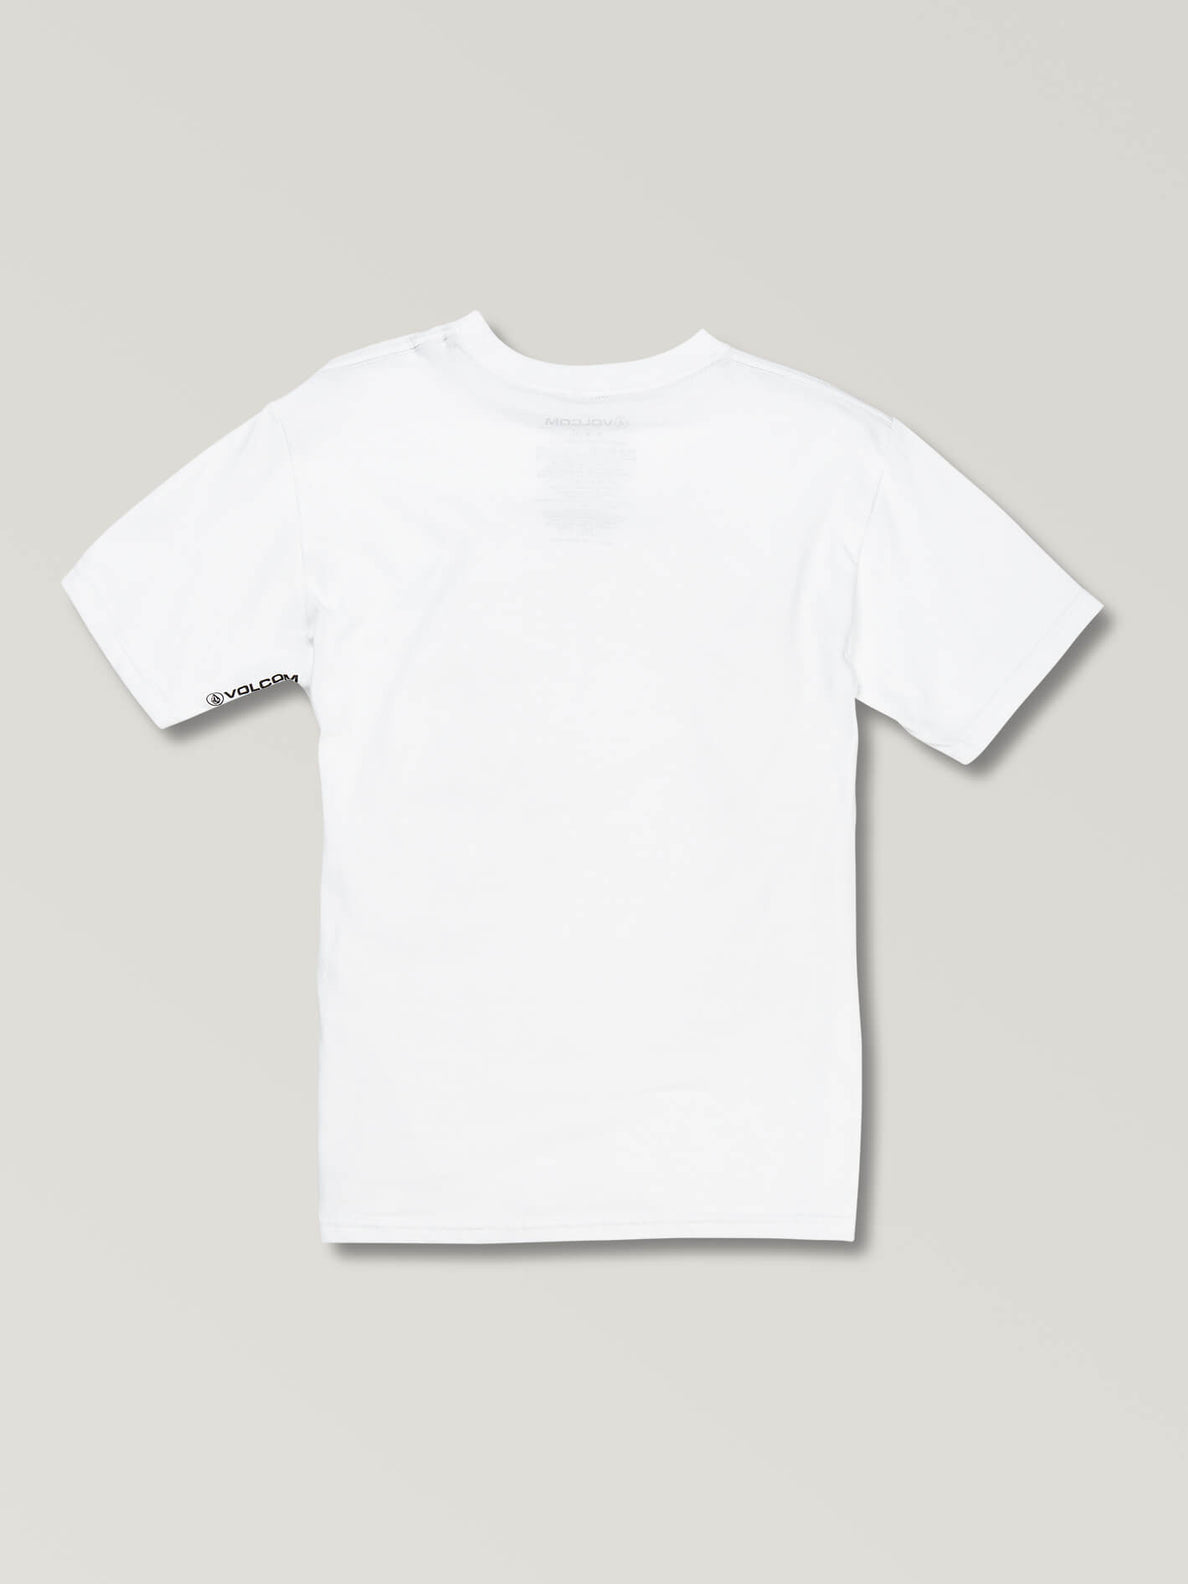 Deadly Stone Short Sleeve Tee Youth - White